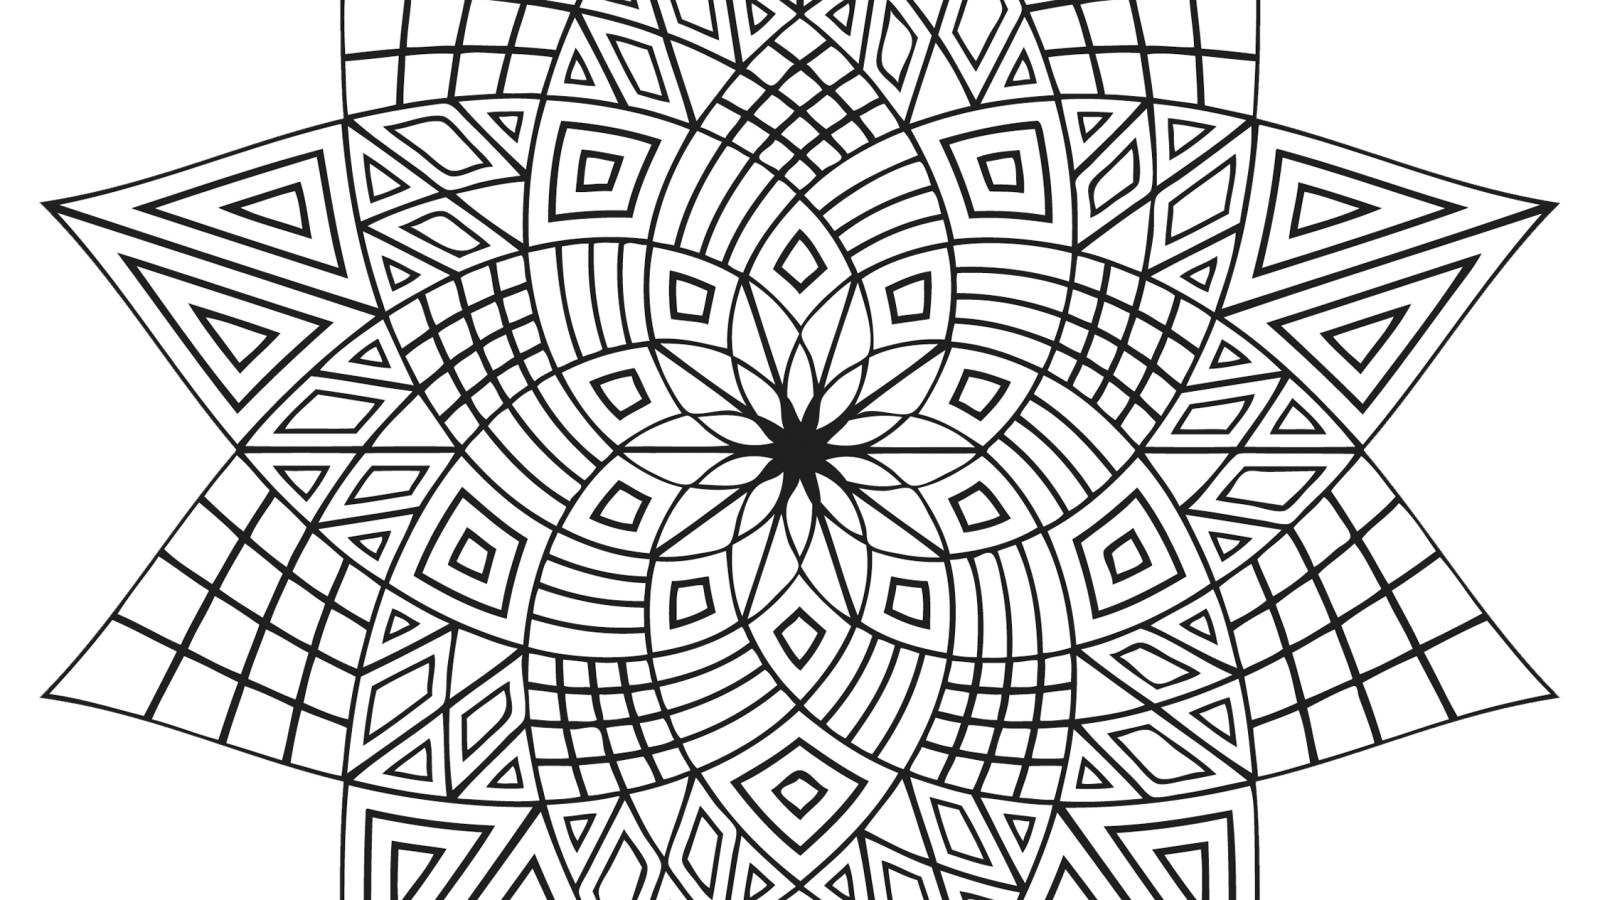 Geometric coloring pages only coloring pages for Geometric coloring pages online